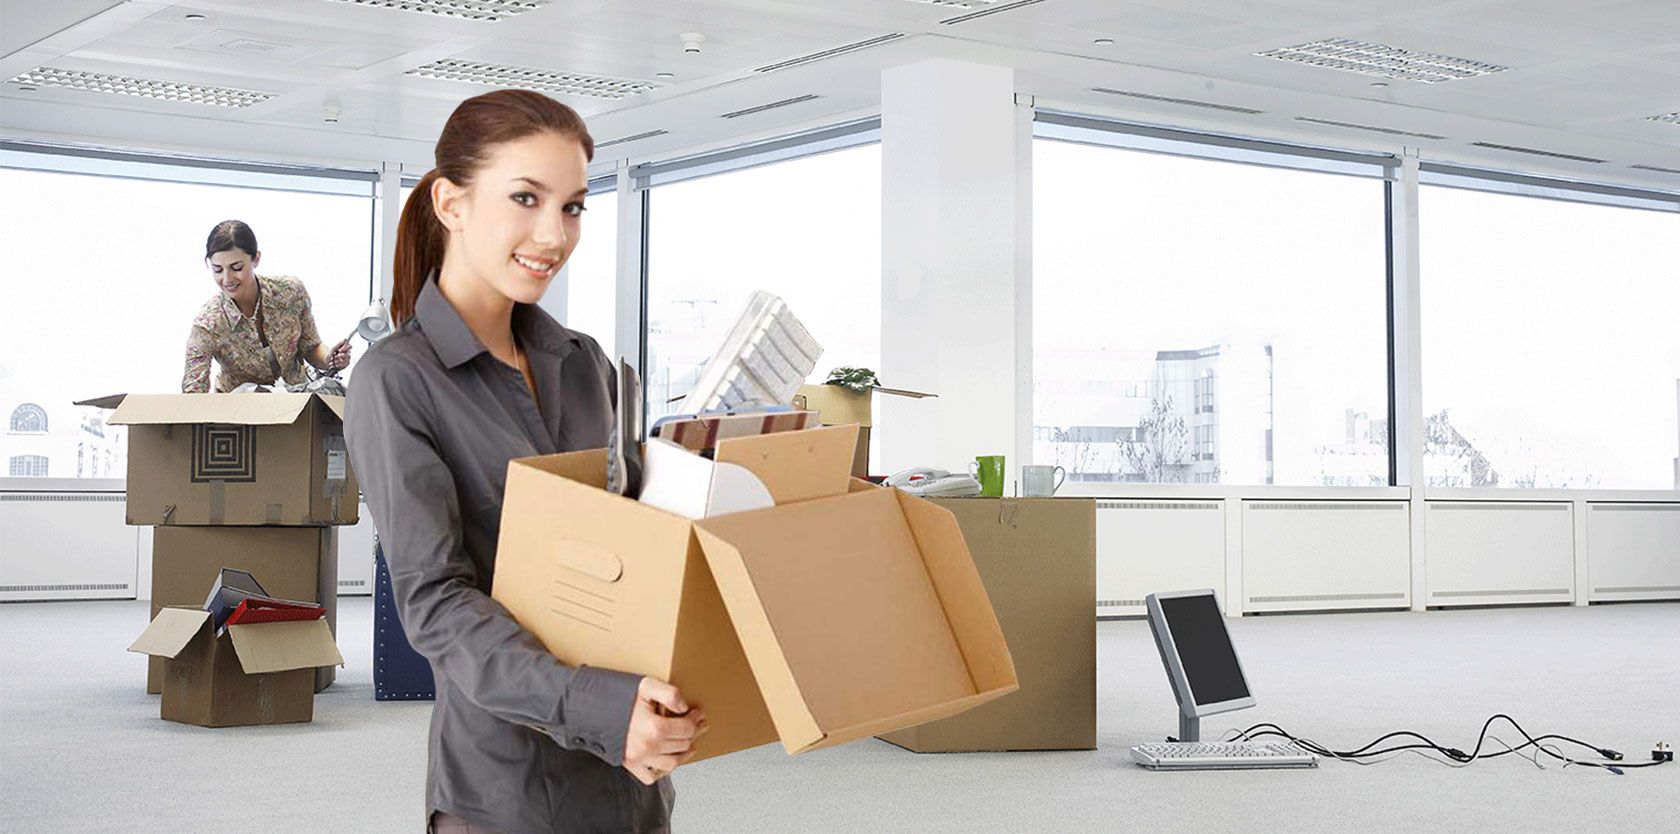 Movers & Packers Services